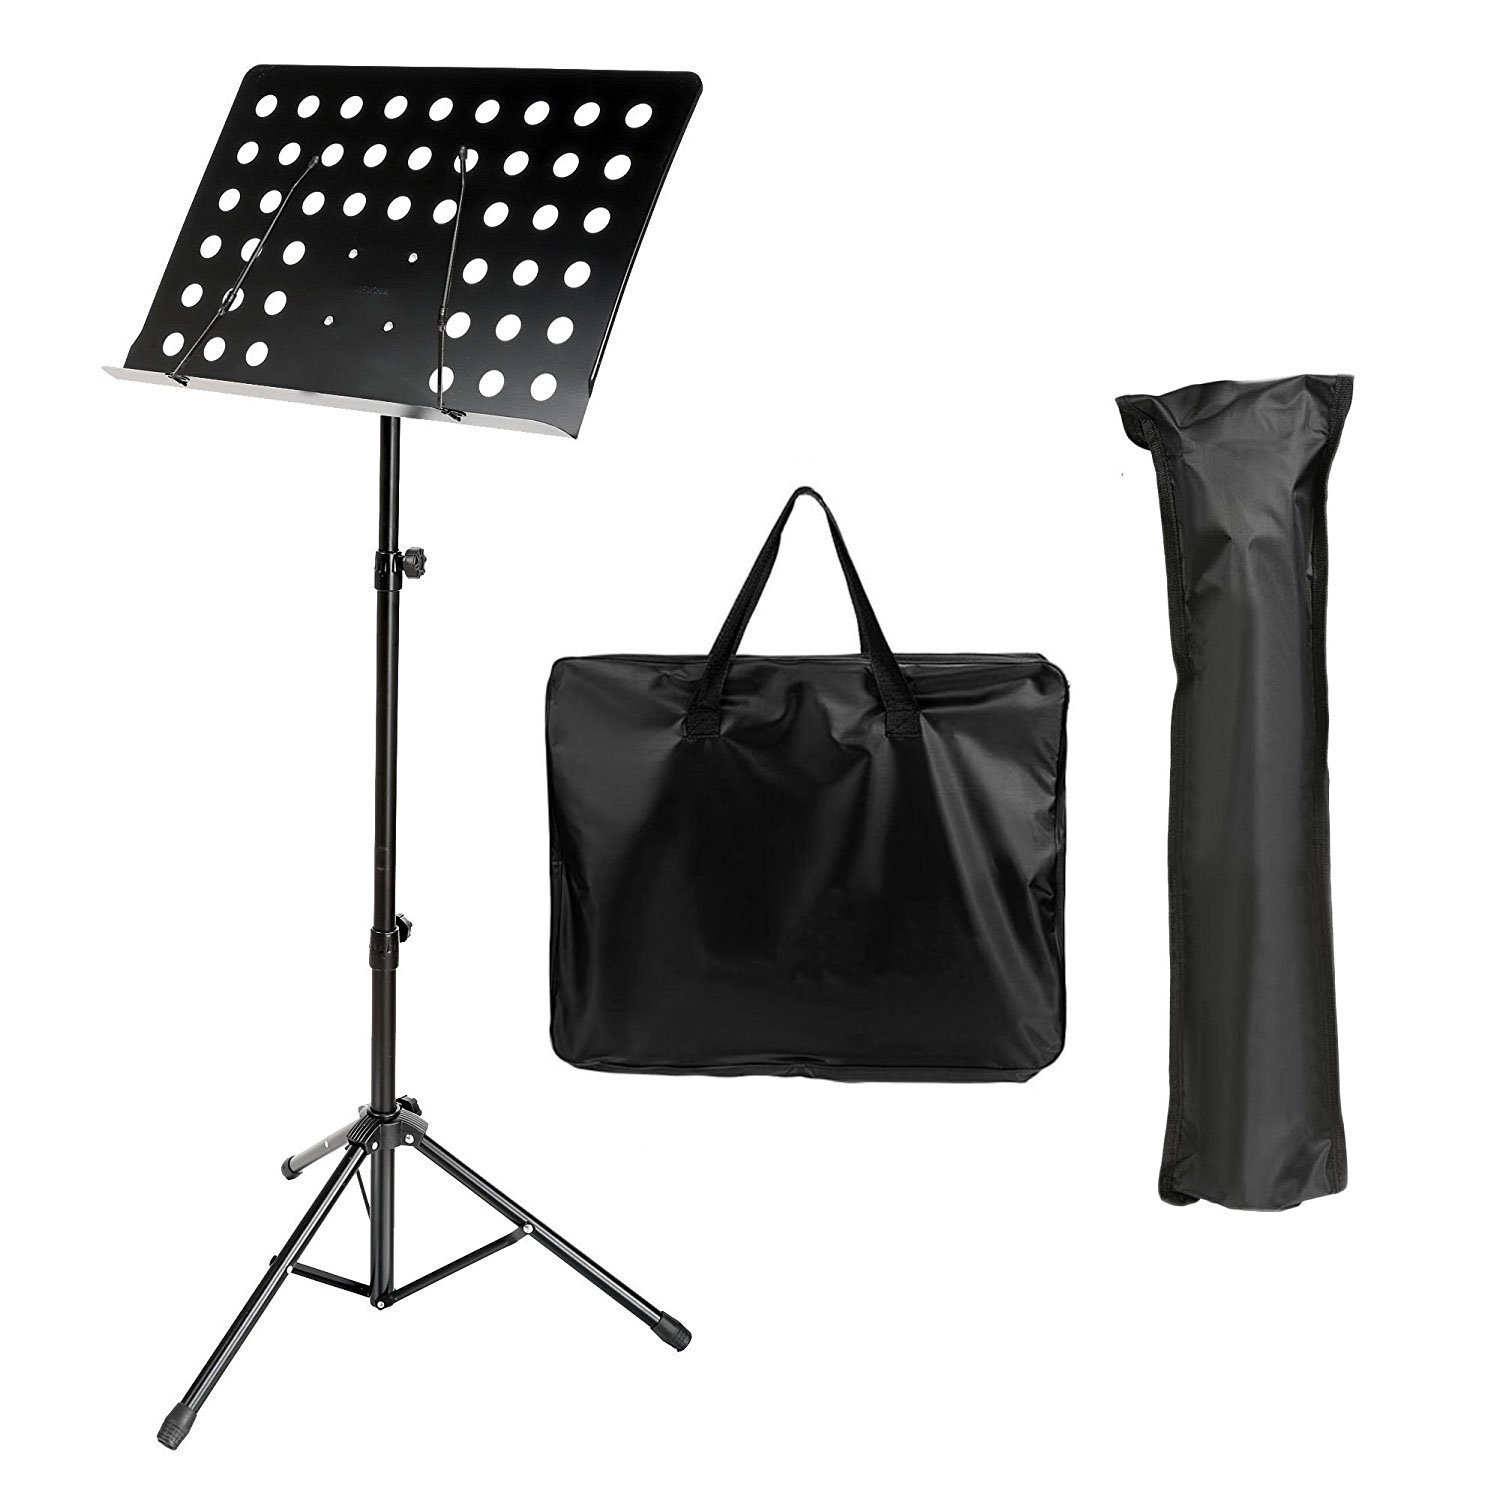 Dtemple Adjustable Folding Music Conductor Stand/Book Tripod Holder with Two Carrying Bags Lightweight - Portable and Suitable for Violin, Guitar, Flute and Instrumental Performance